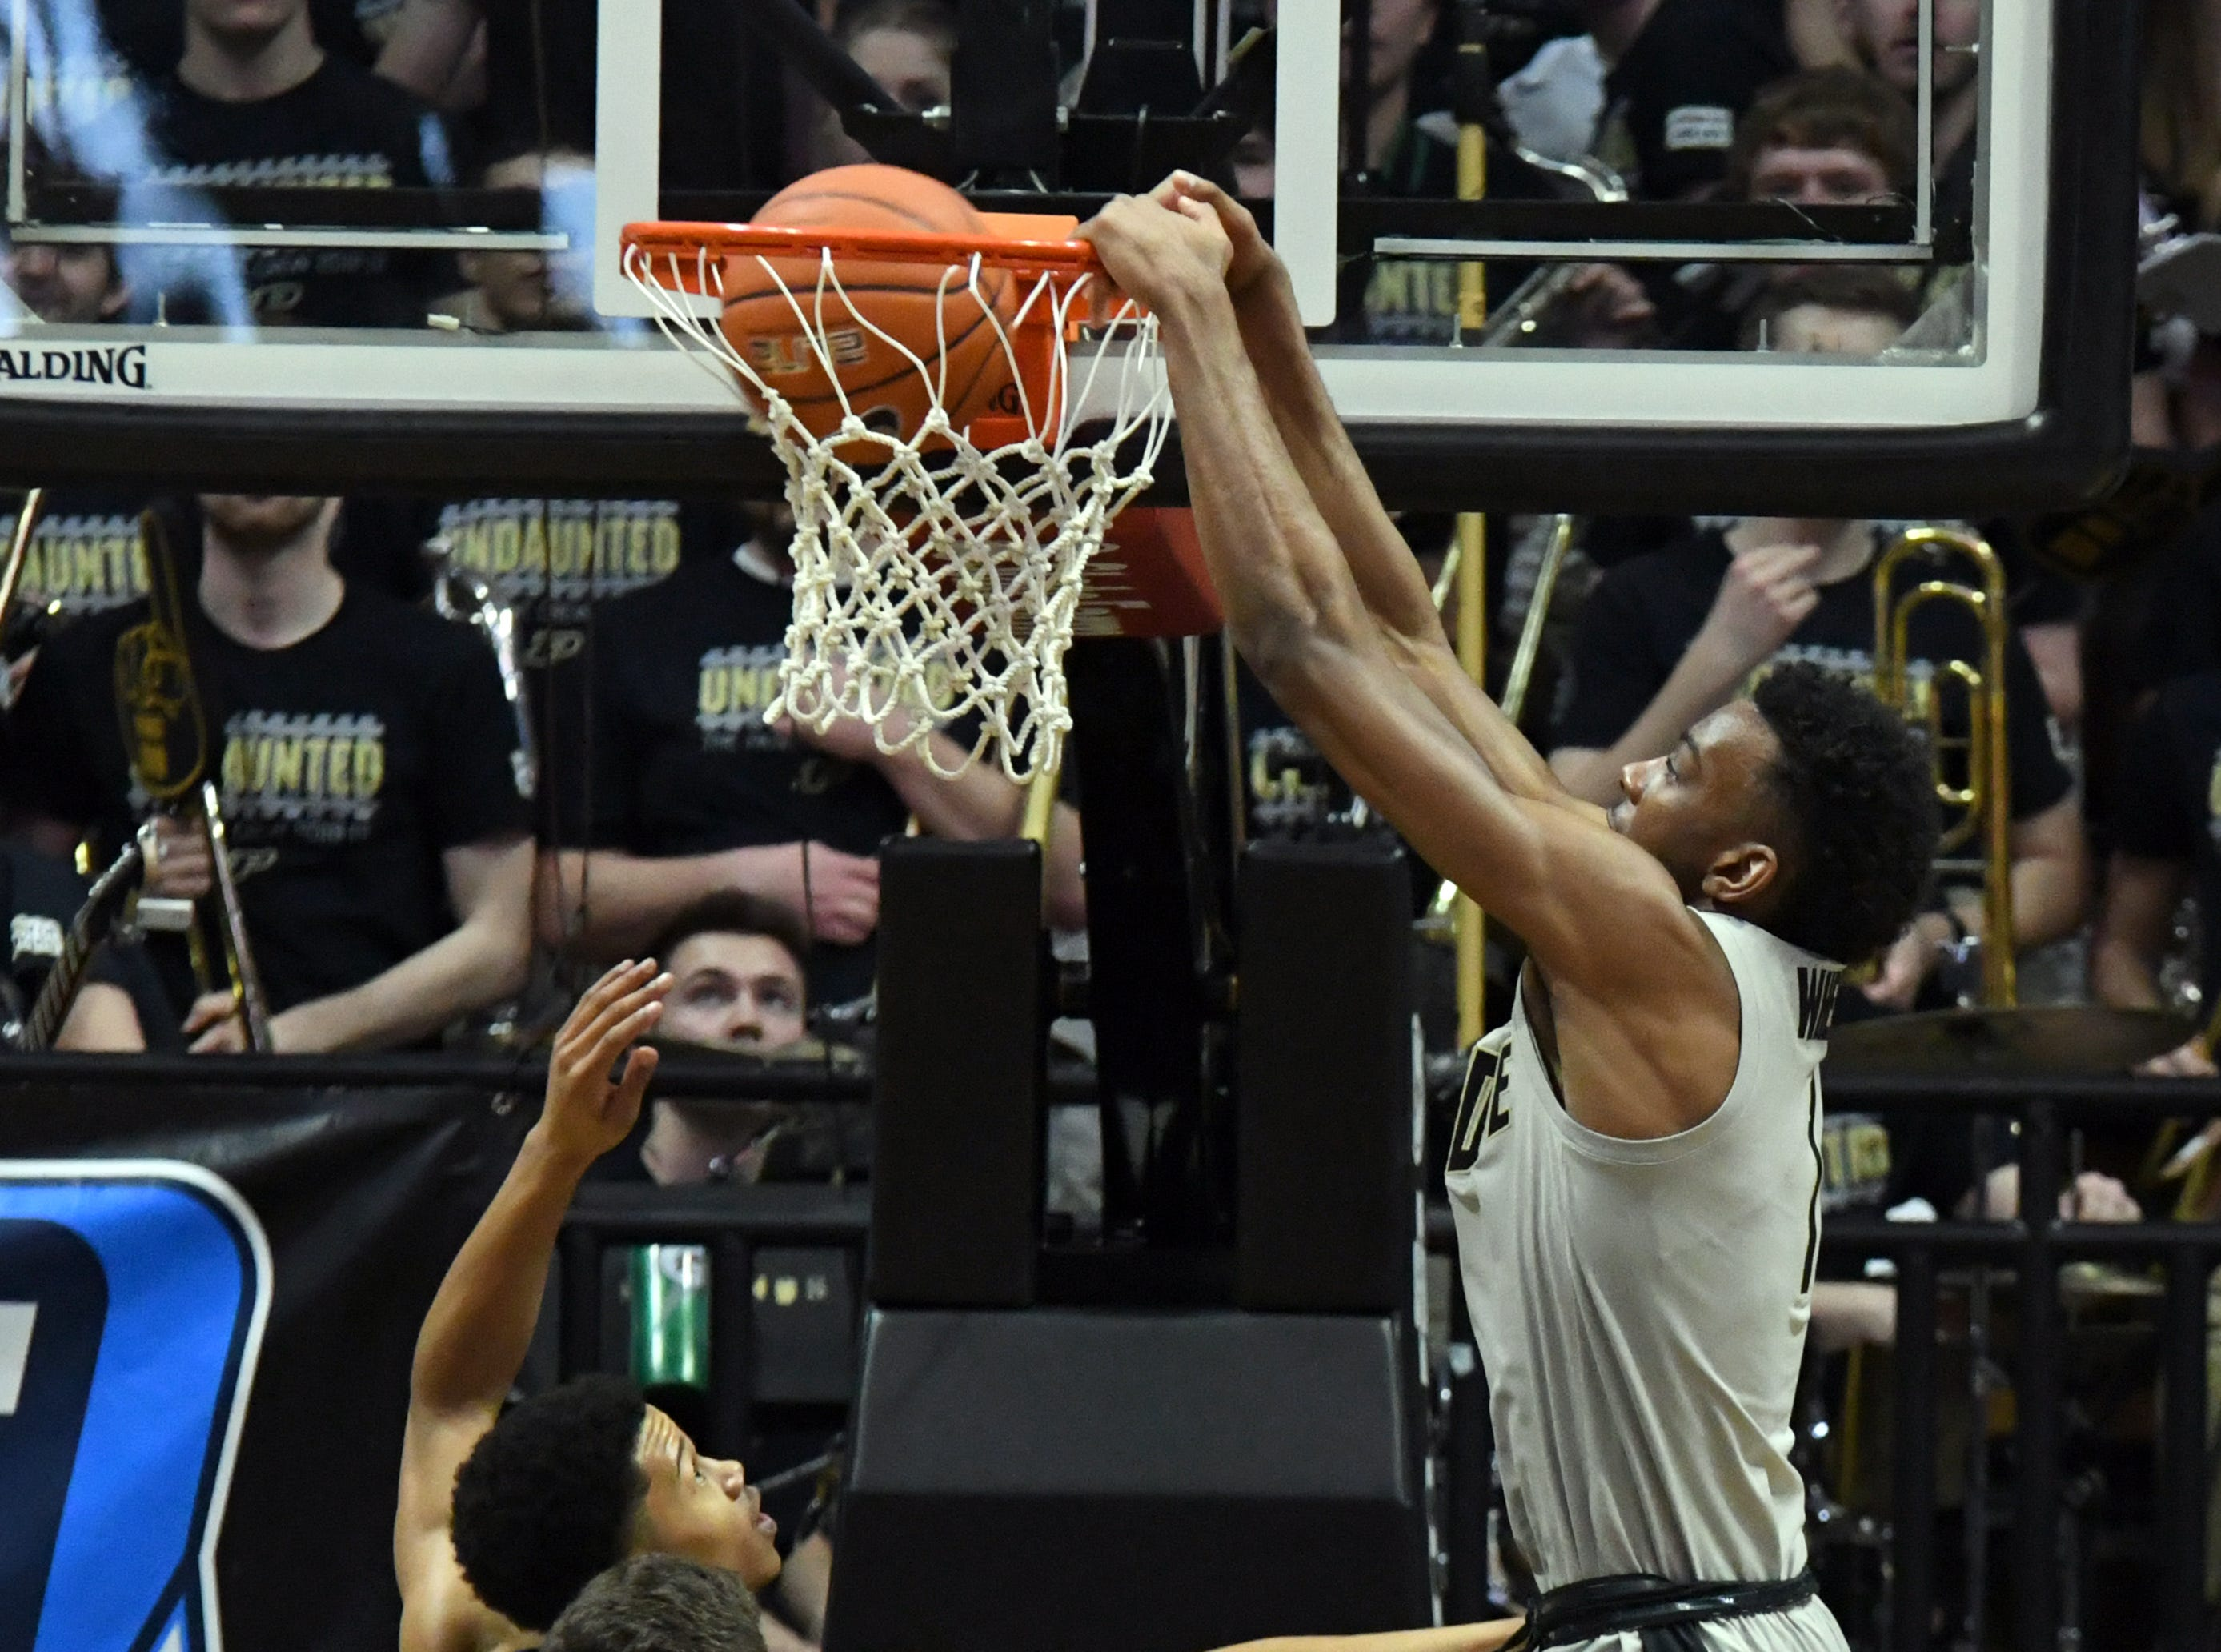 By Frank Oliver for the Journal and Courier -- Action from Purdue's 76-64 win over Penn State at Purdue on Saturday February 16, 2019.